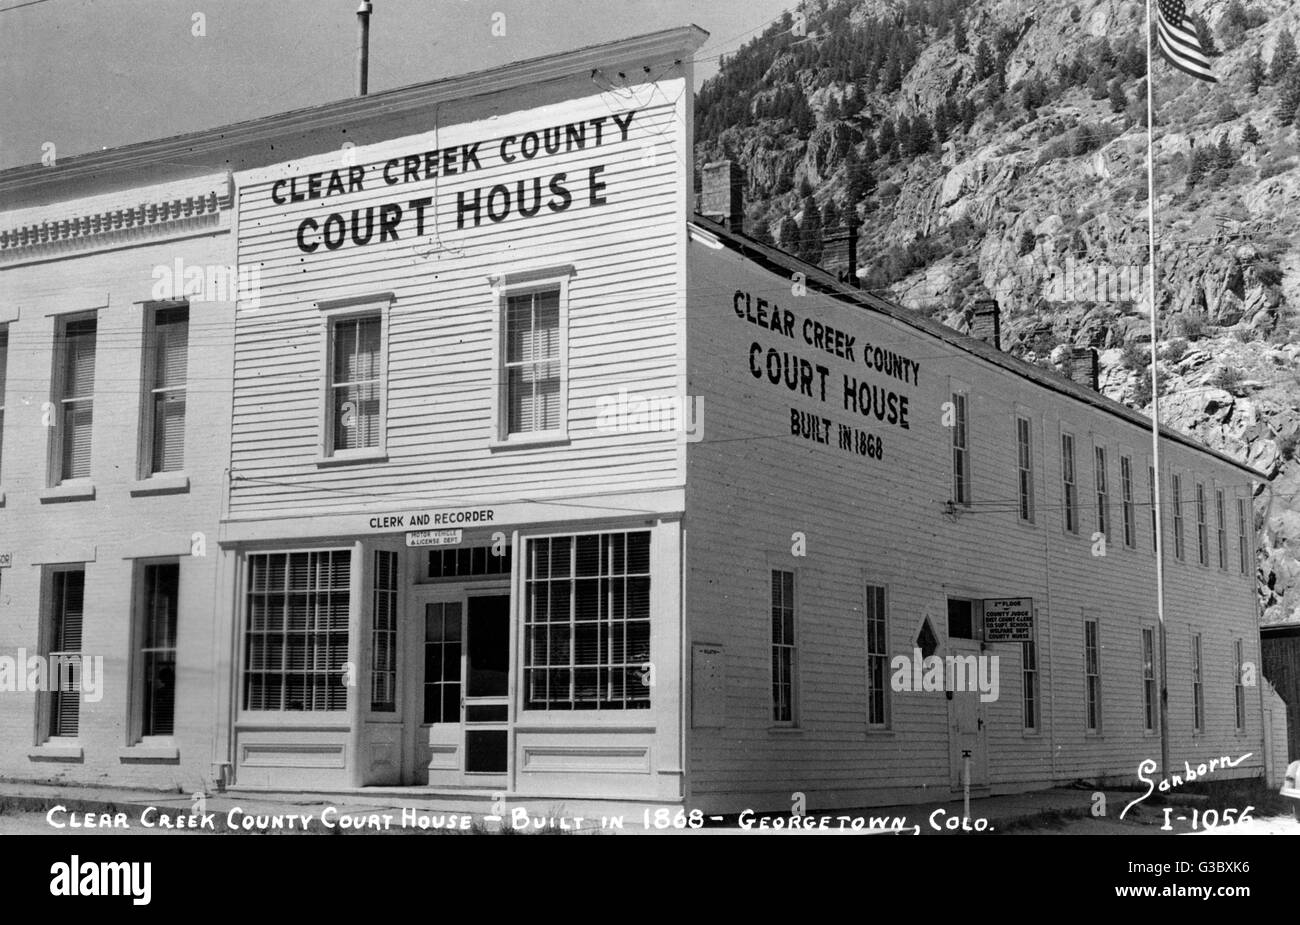 Clear Creek County Court House (built in 1868), Georgetown, Colorado, USA.      Date: 1940s - Stock Image